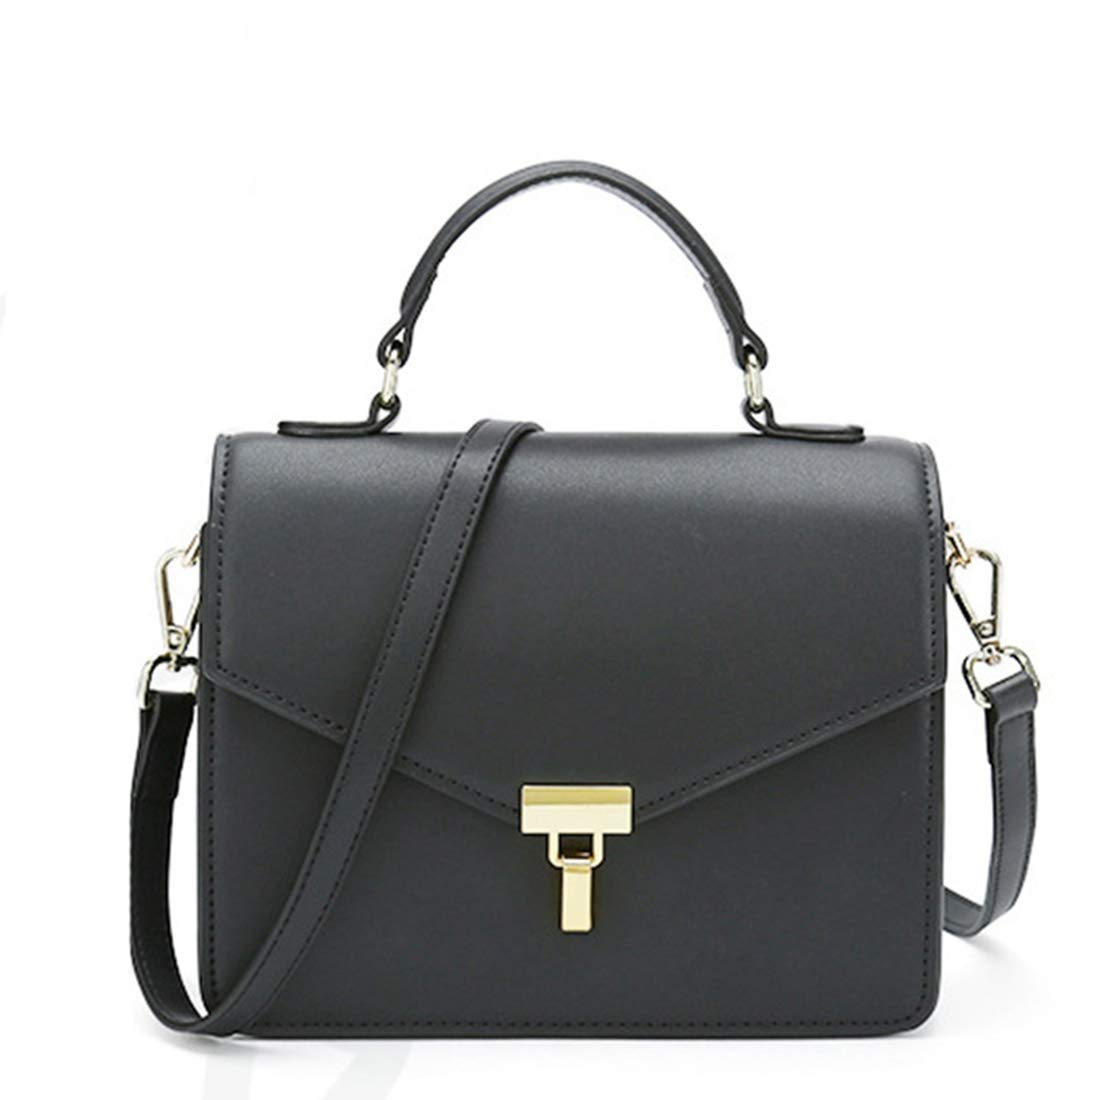 RABILTY Simple Retro Lock Solid Color Square Leather Shoulder Bag Messenger Bag Color : Black